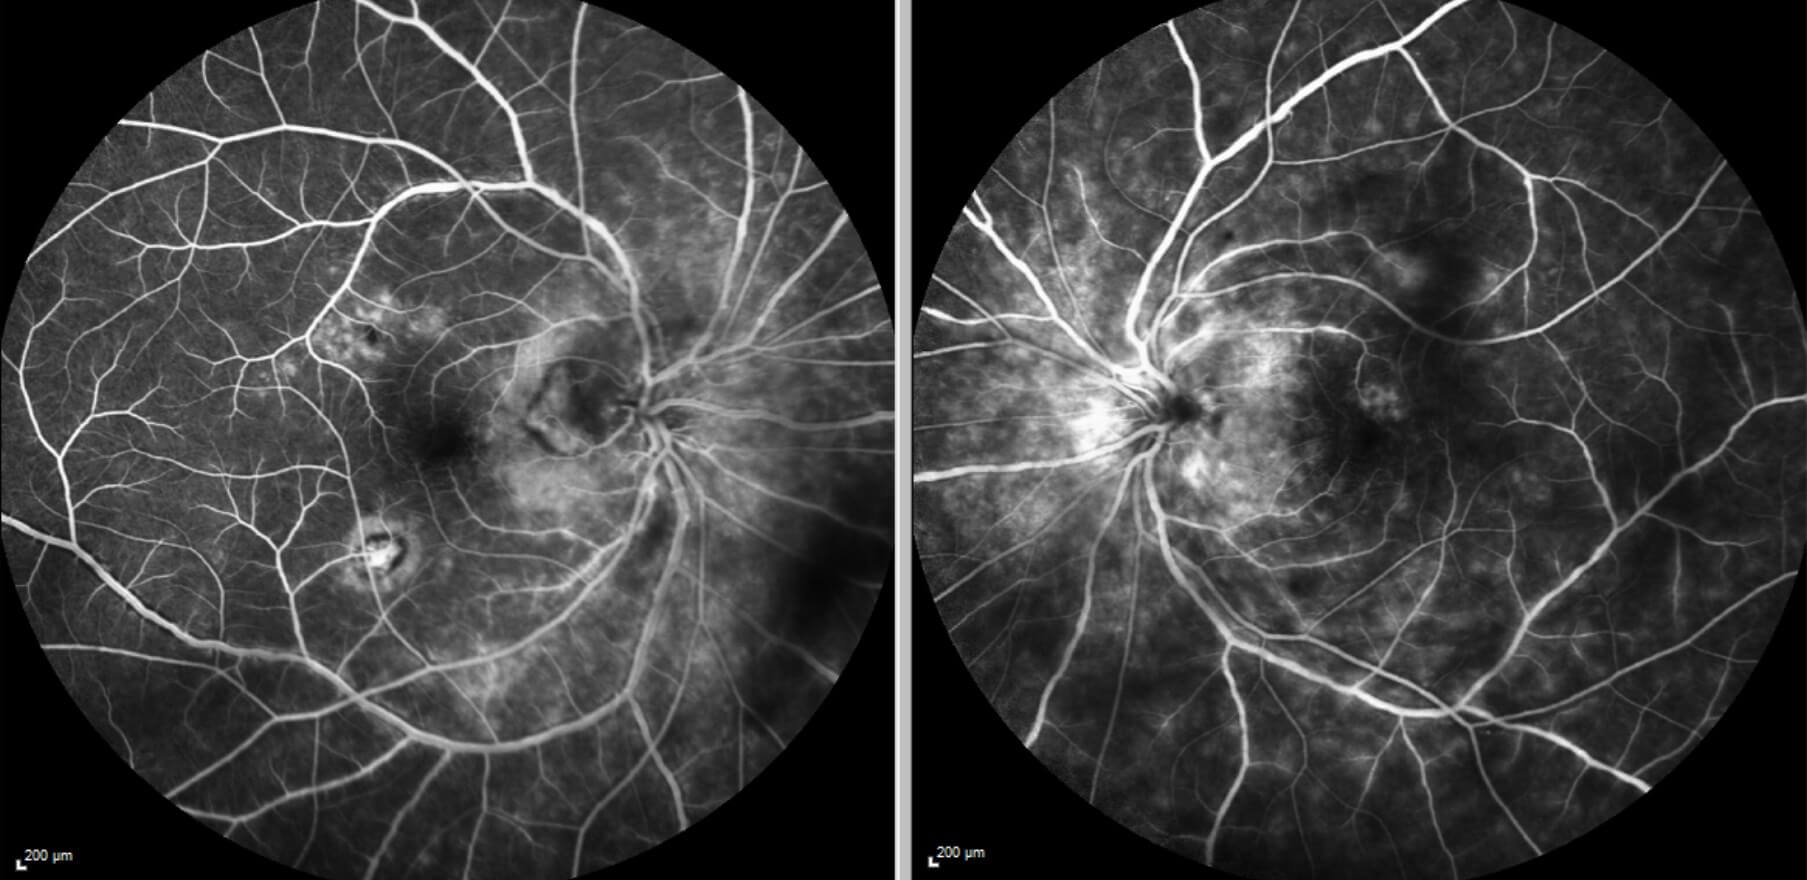 Fundus fluorescein angiography shows bilateral hyperfluorescent vasculitis with irregularity of the retinal vessel calibre, some disc leakage and choroidal neovascular membranes both temporal to the right optic disc and inferotemporal to the fovea.